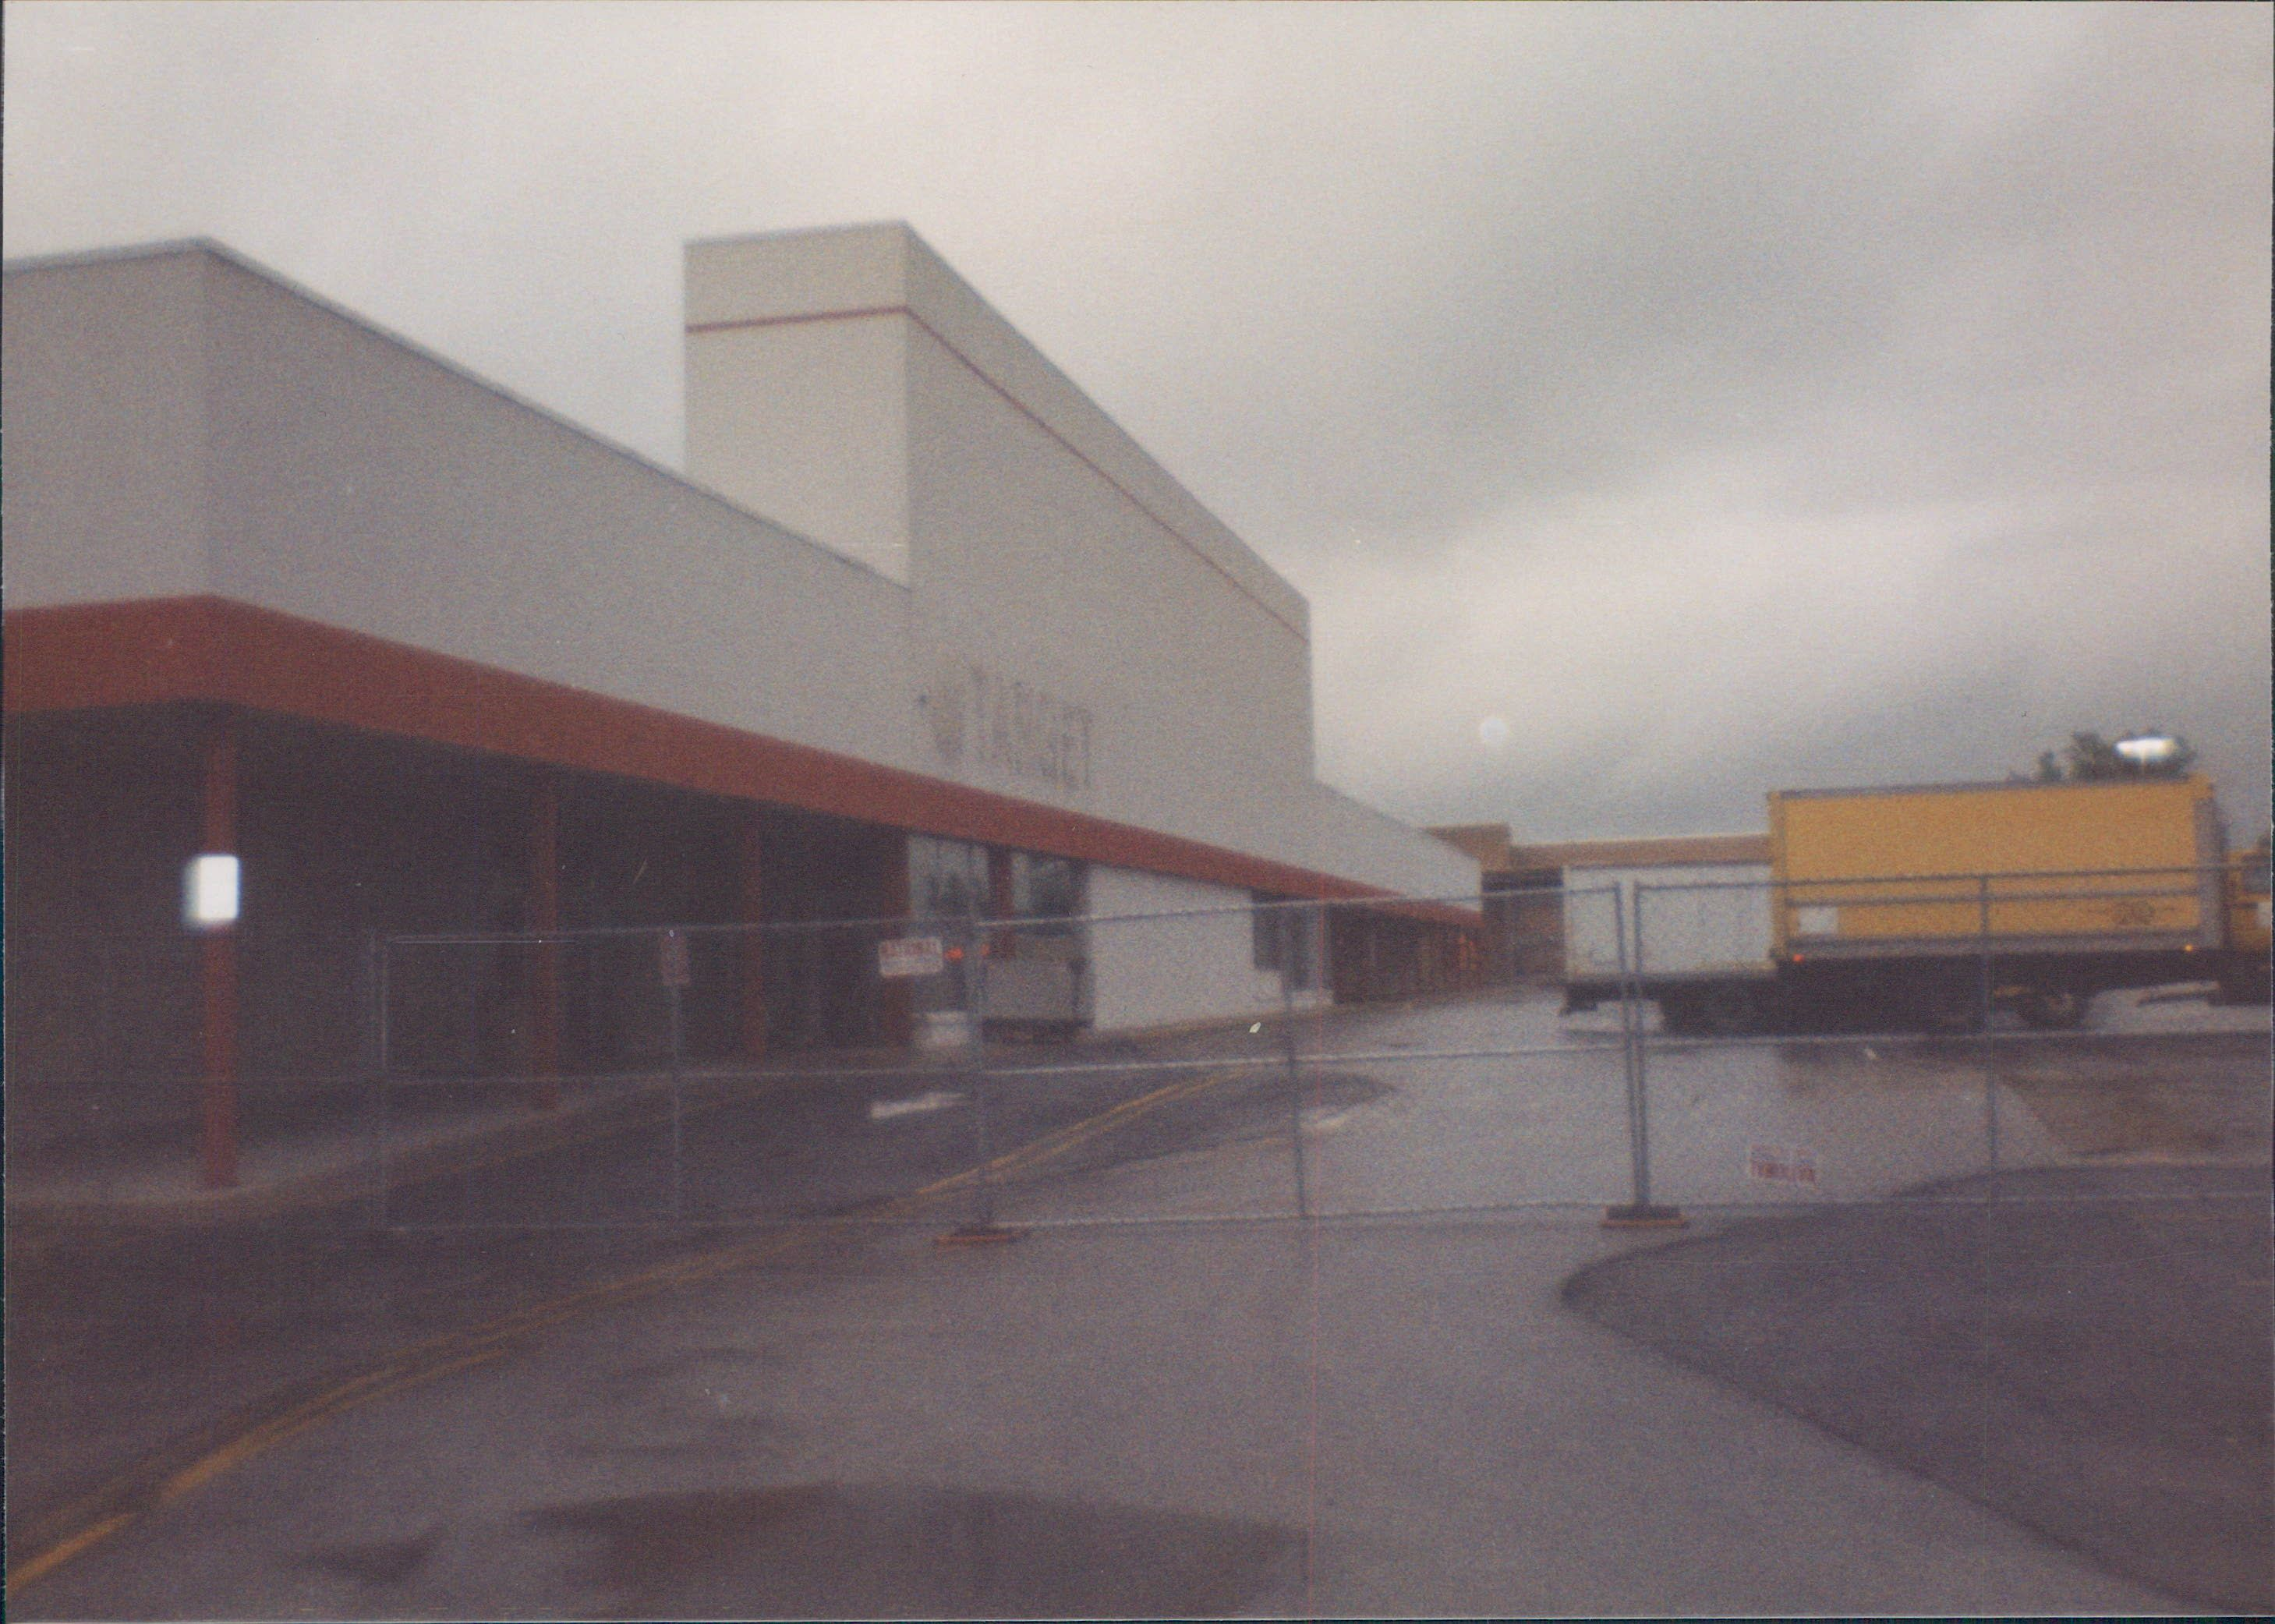 Target Department Store, Nora Plaza, Indianapolis, Indiana.